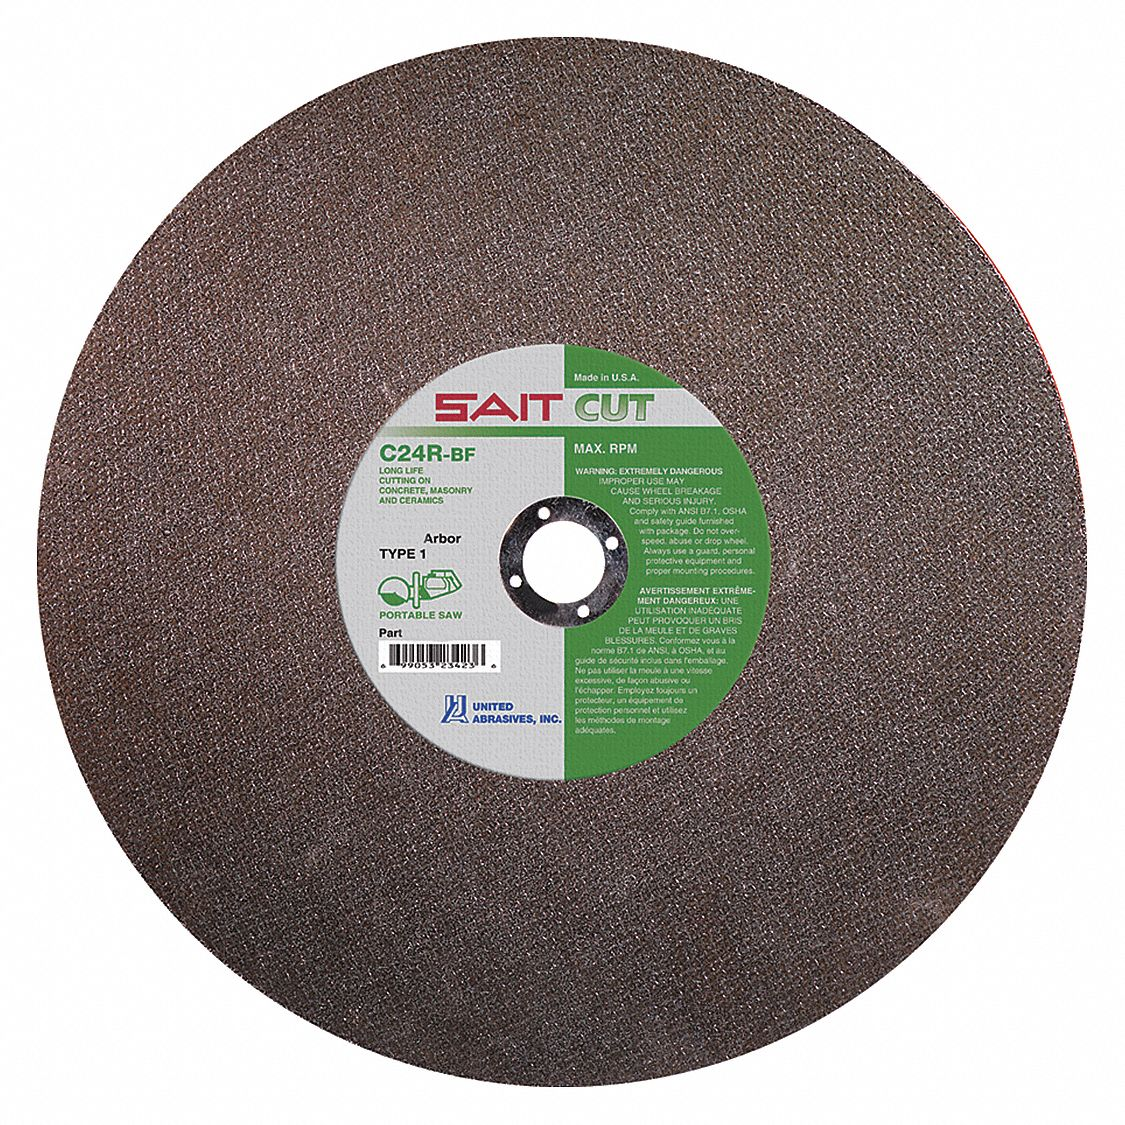 14 in,  Type 1 Silicon Carbide Abrasive Cut-Off Wheel,  1 in Arbor Hole Size,  0.125 in Thickness